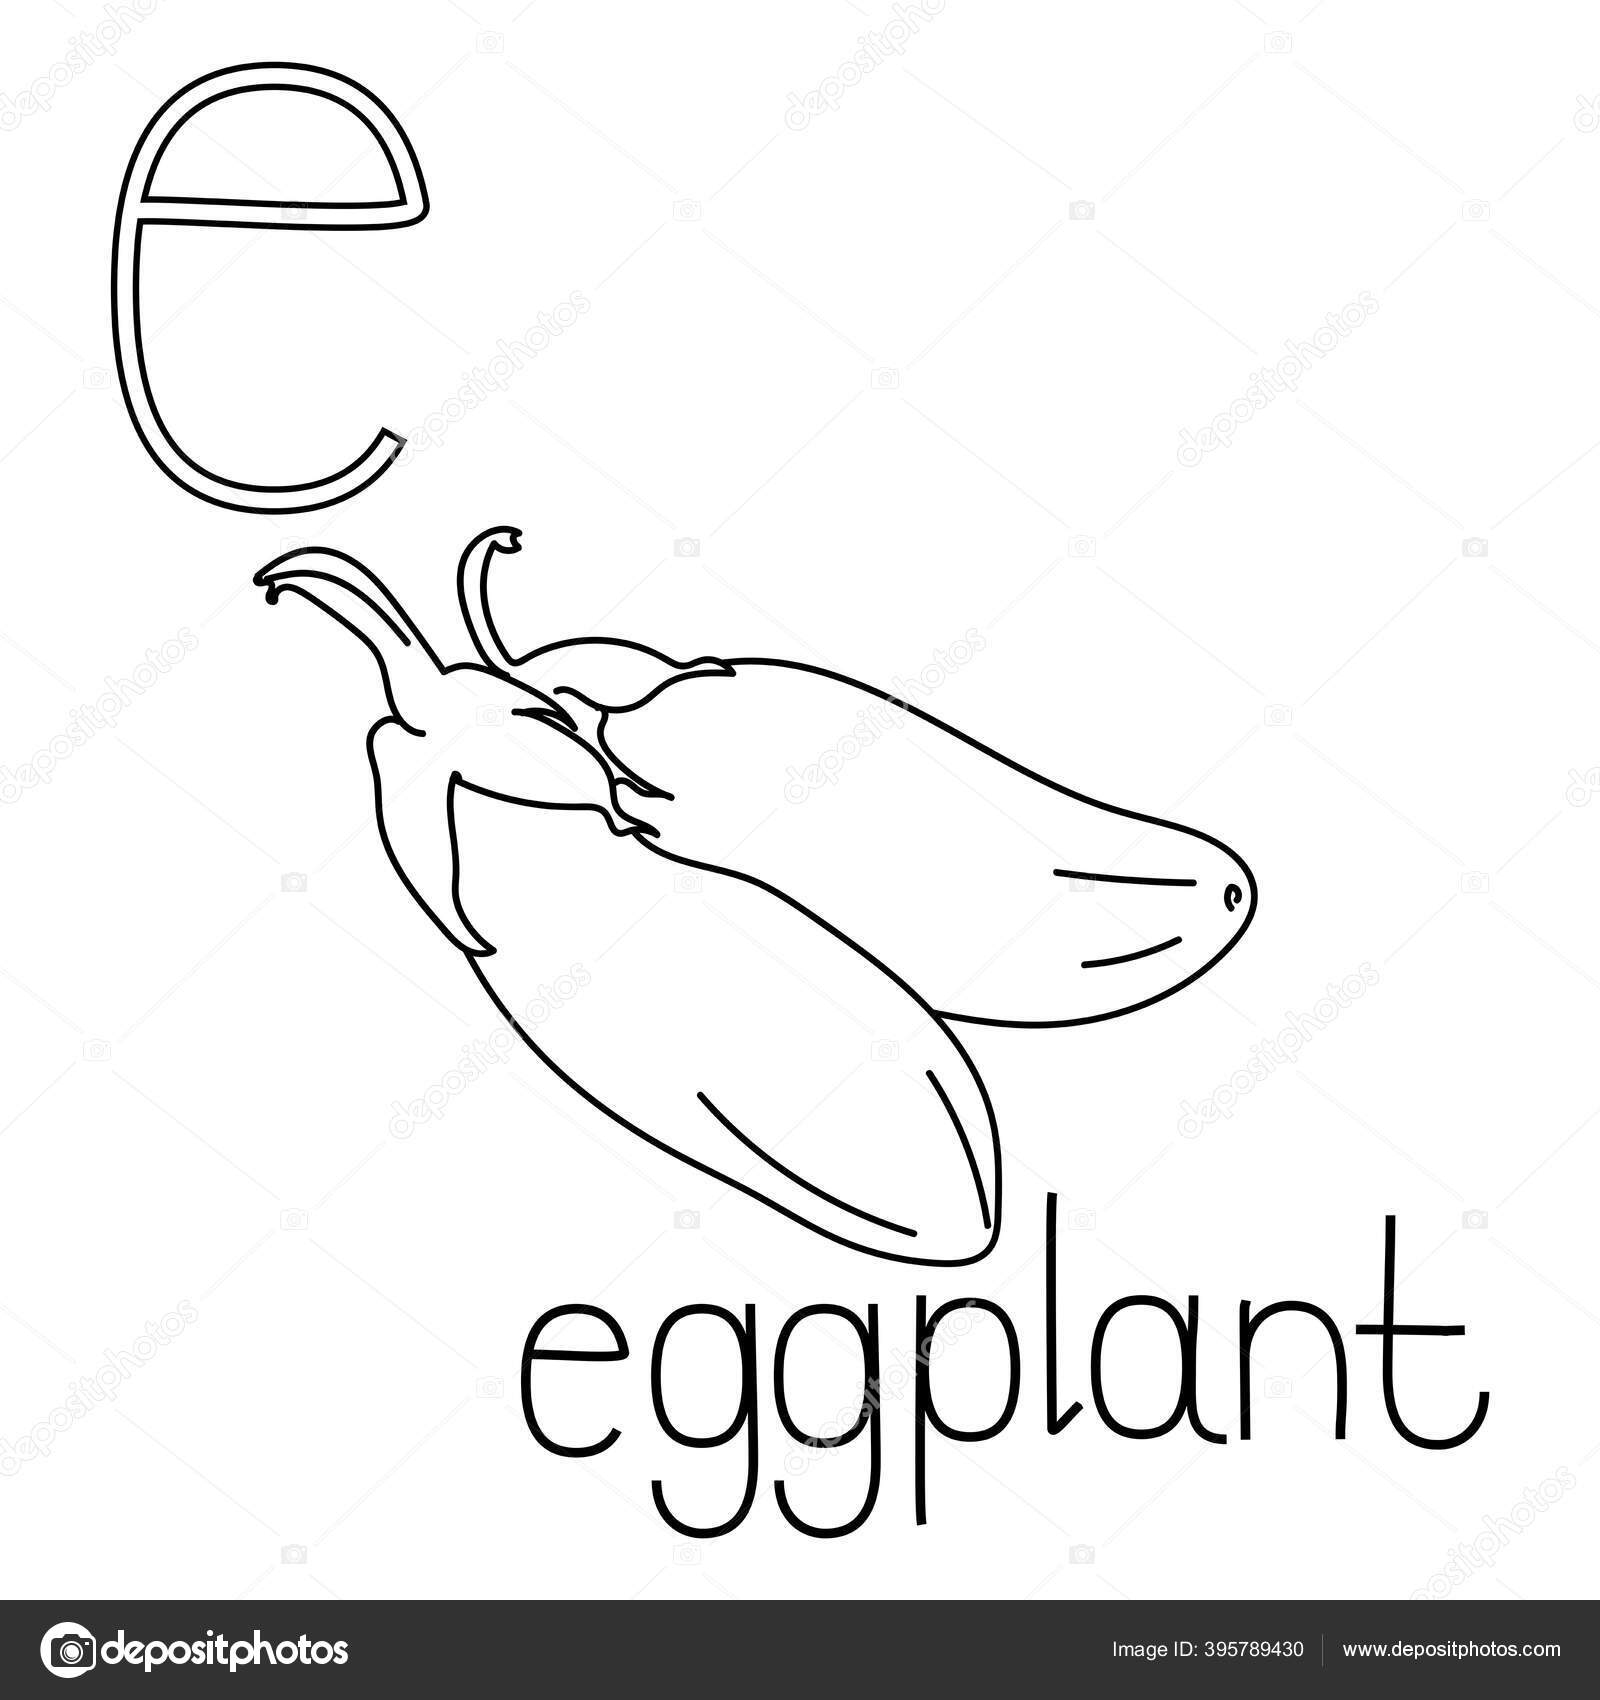 coloring page fruit vegetable abc letter eggplant educated coloring card stock vector c sunnycoloring 395789430 https depositphotos com 395789430 stock illustration coloring page fruit vegetable abc html